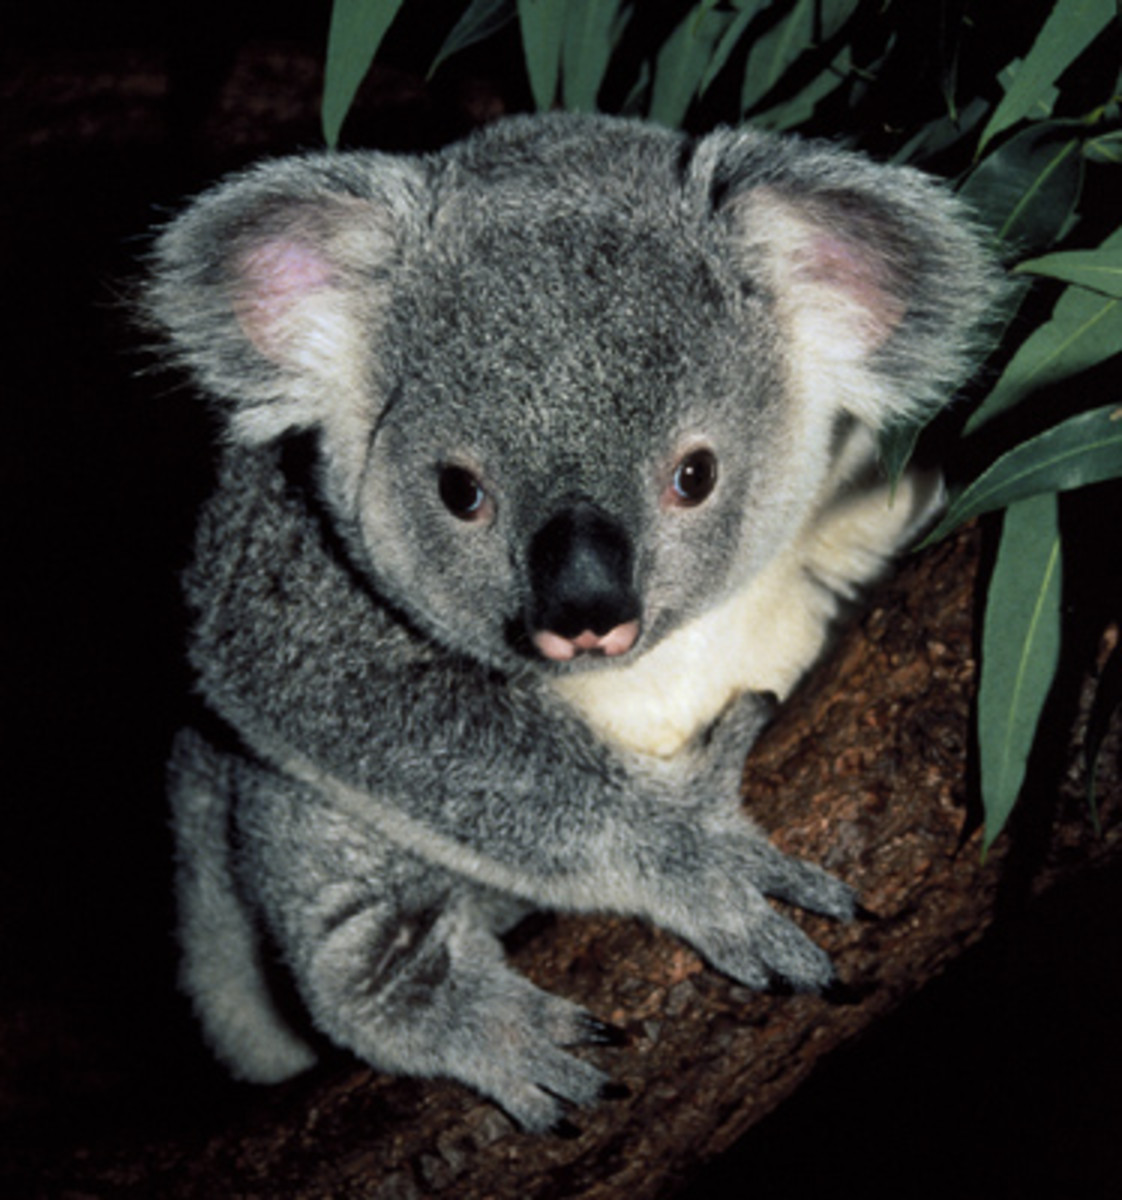 Koala Bears: The Cutest, Cuddliest Animal in the World (That Will Rip Your Face Off)